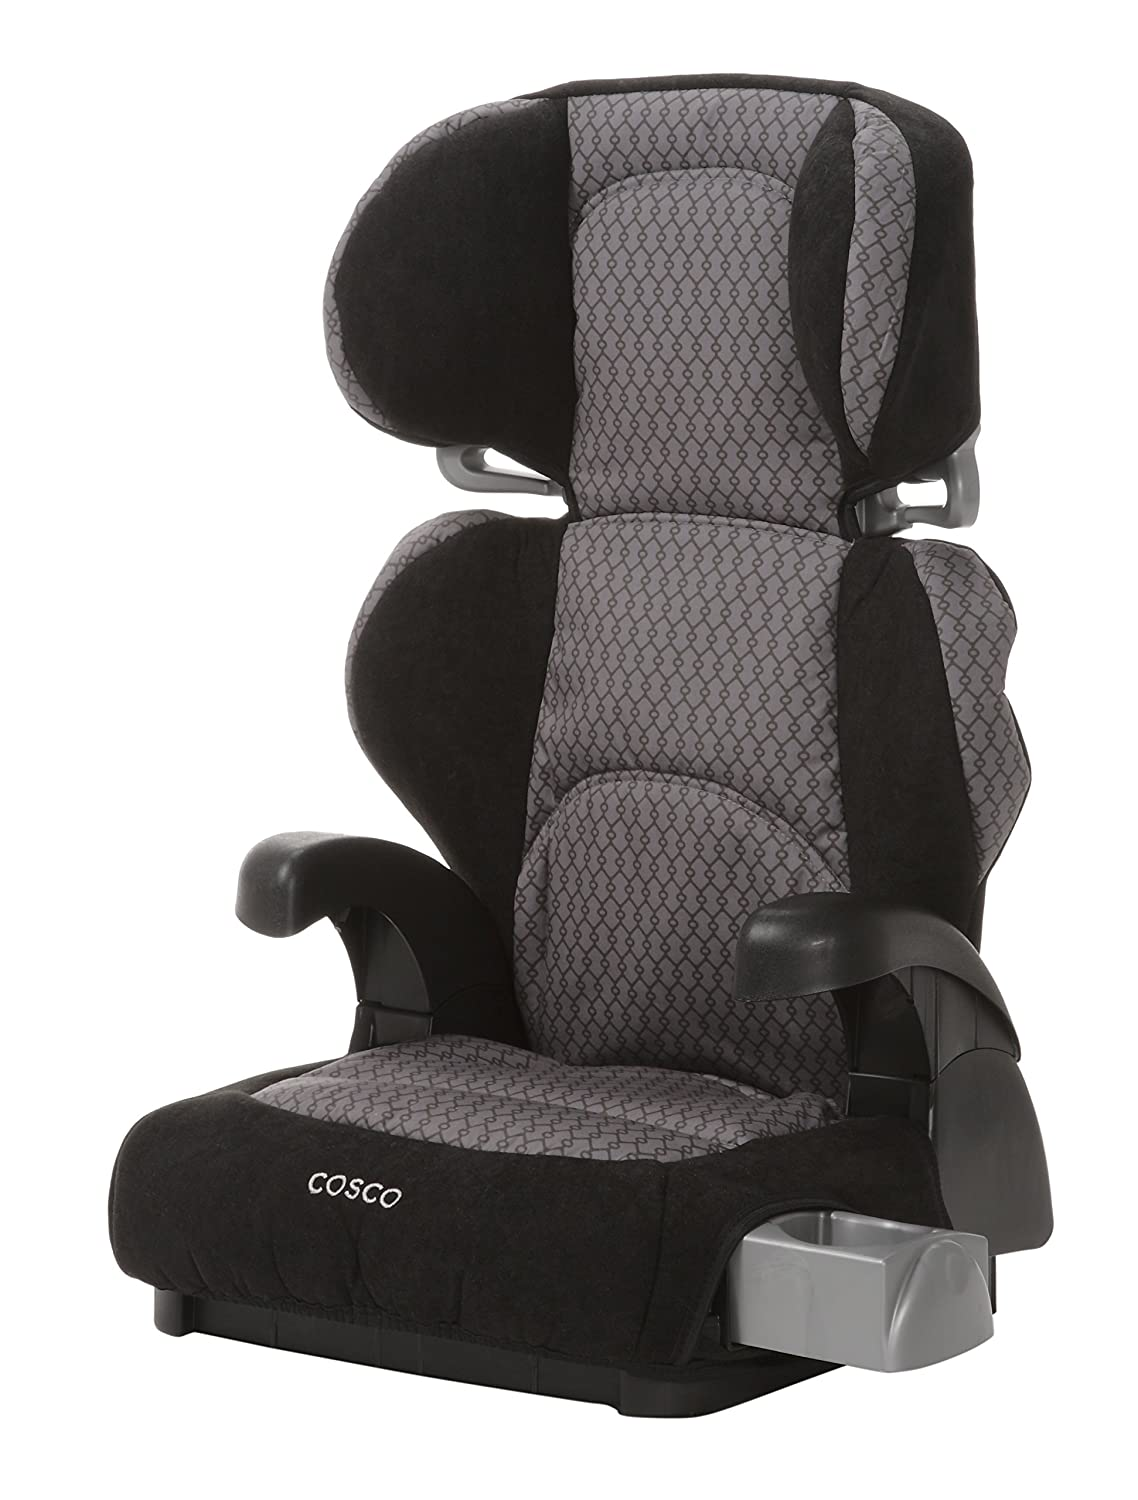 Cosco Pronto Belt Positioning Booster Seat-Linked Black Cosco Inc 22497CAUR